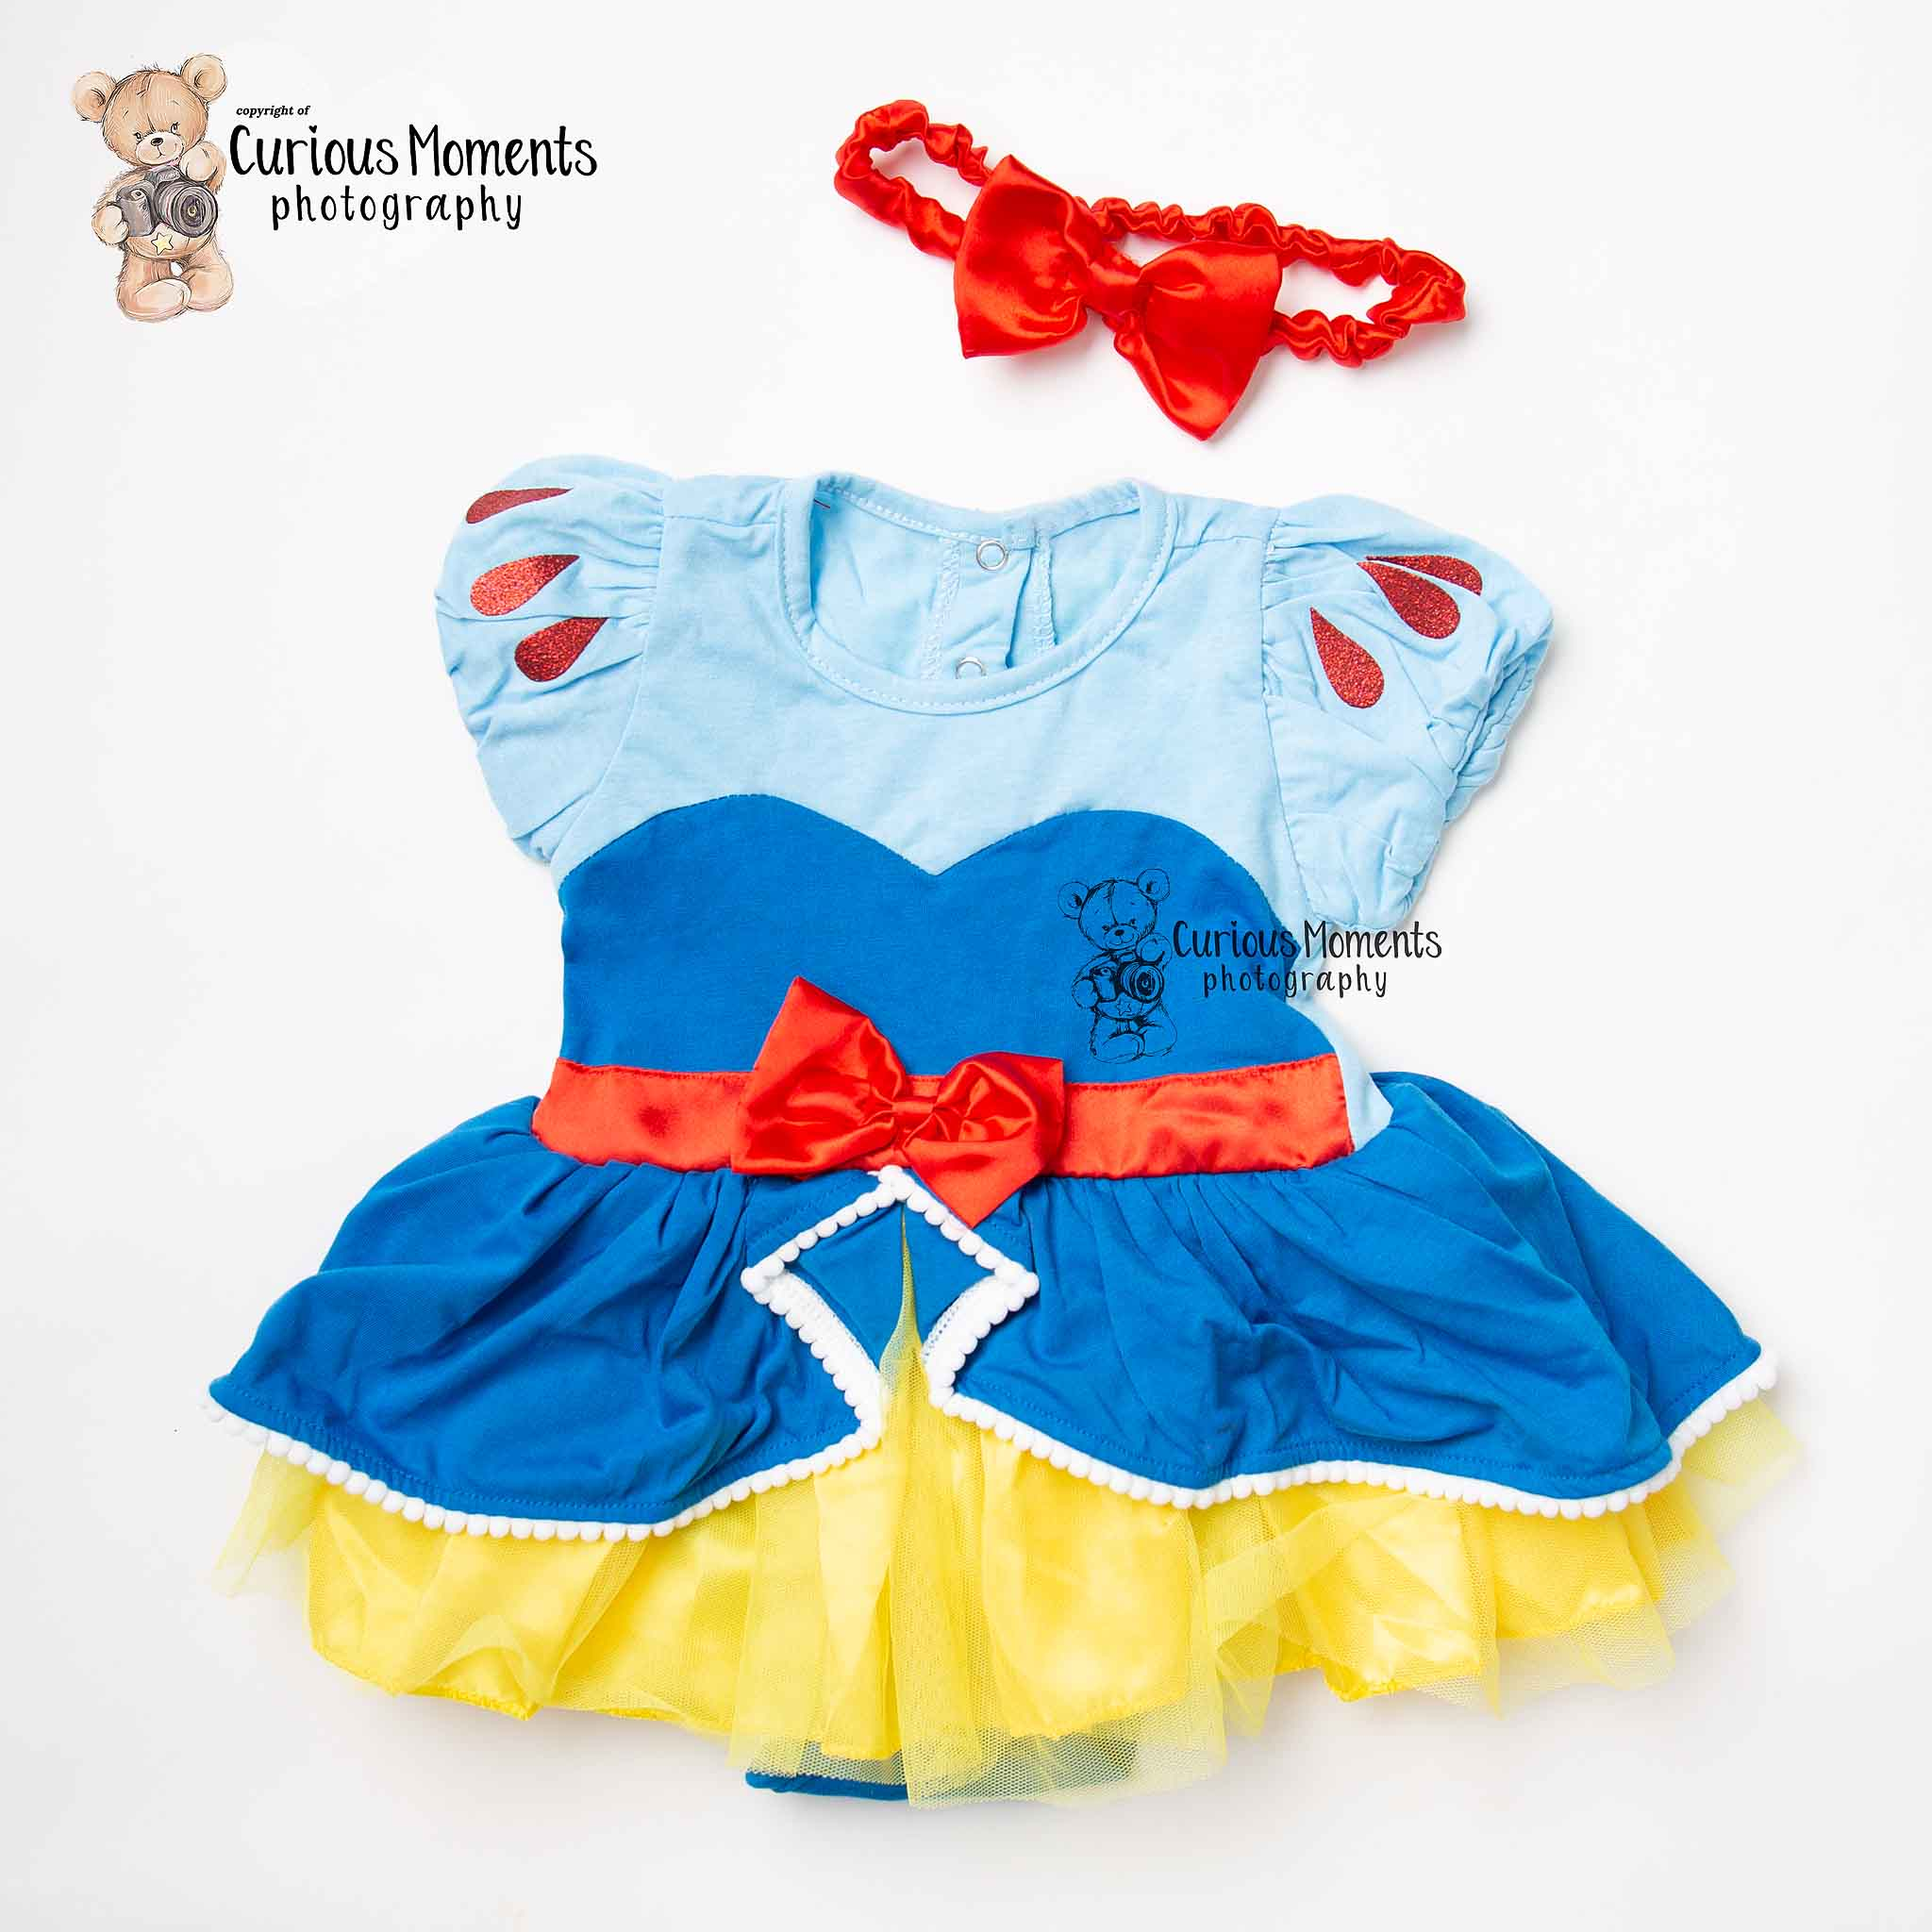 Snow white inspired outfit for cake smash